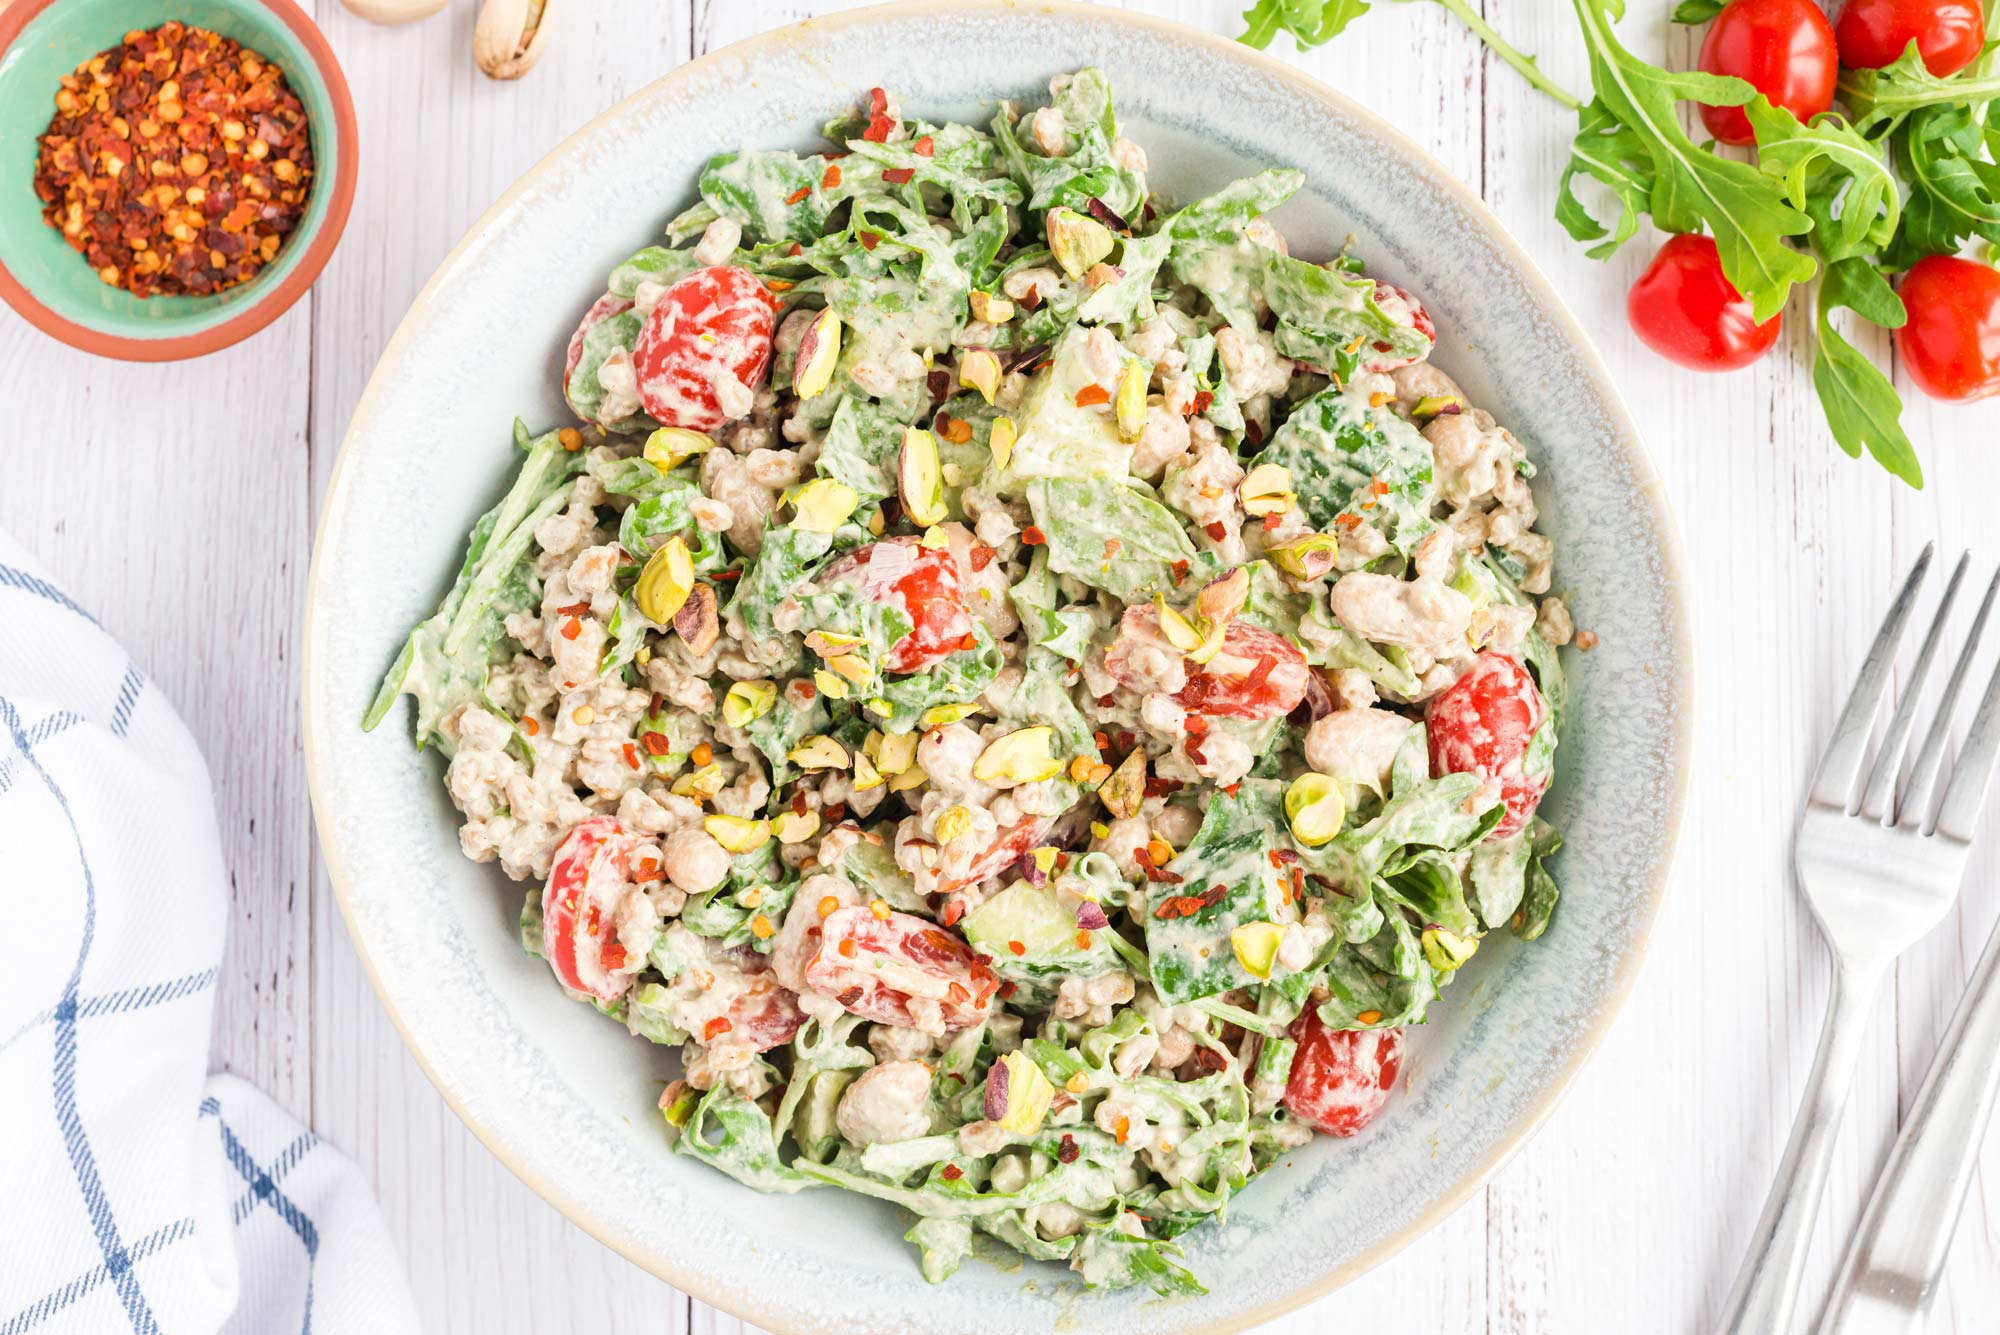 lemon basil farro salad in bowl